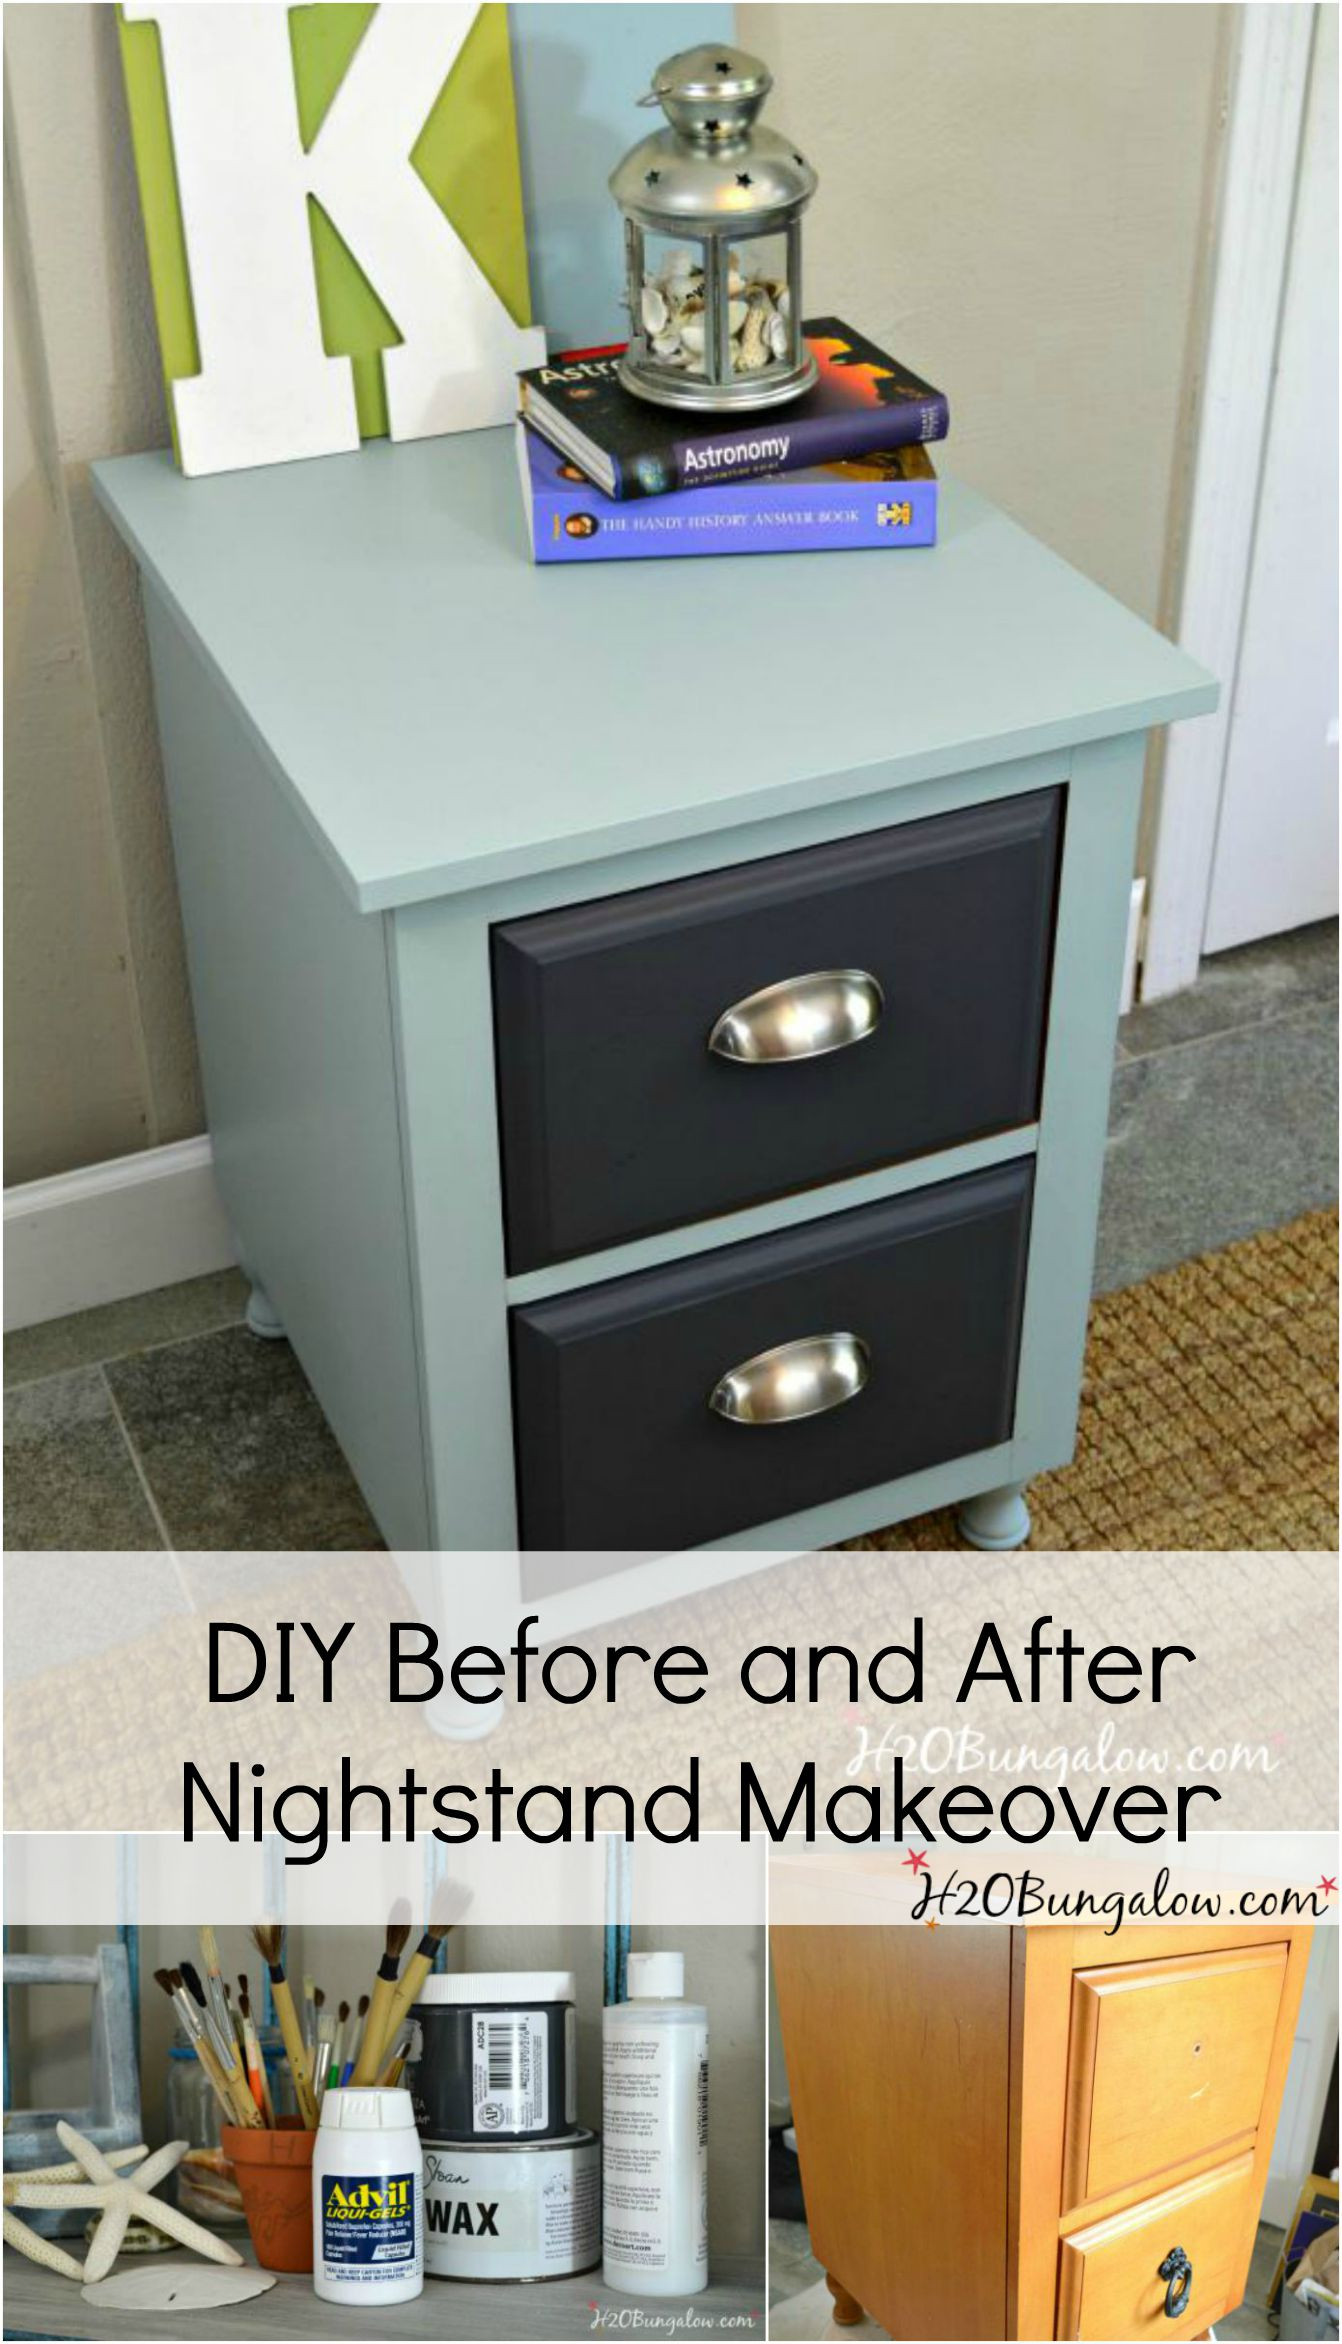 DIY Nightstand Project Before And After An Advil Sponsored Sweepstakes With A Chance To Win